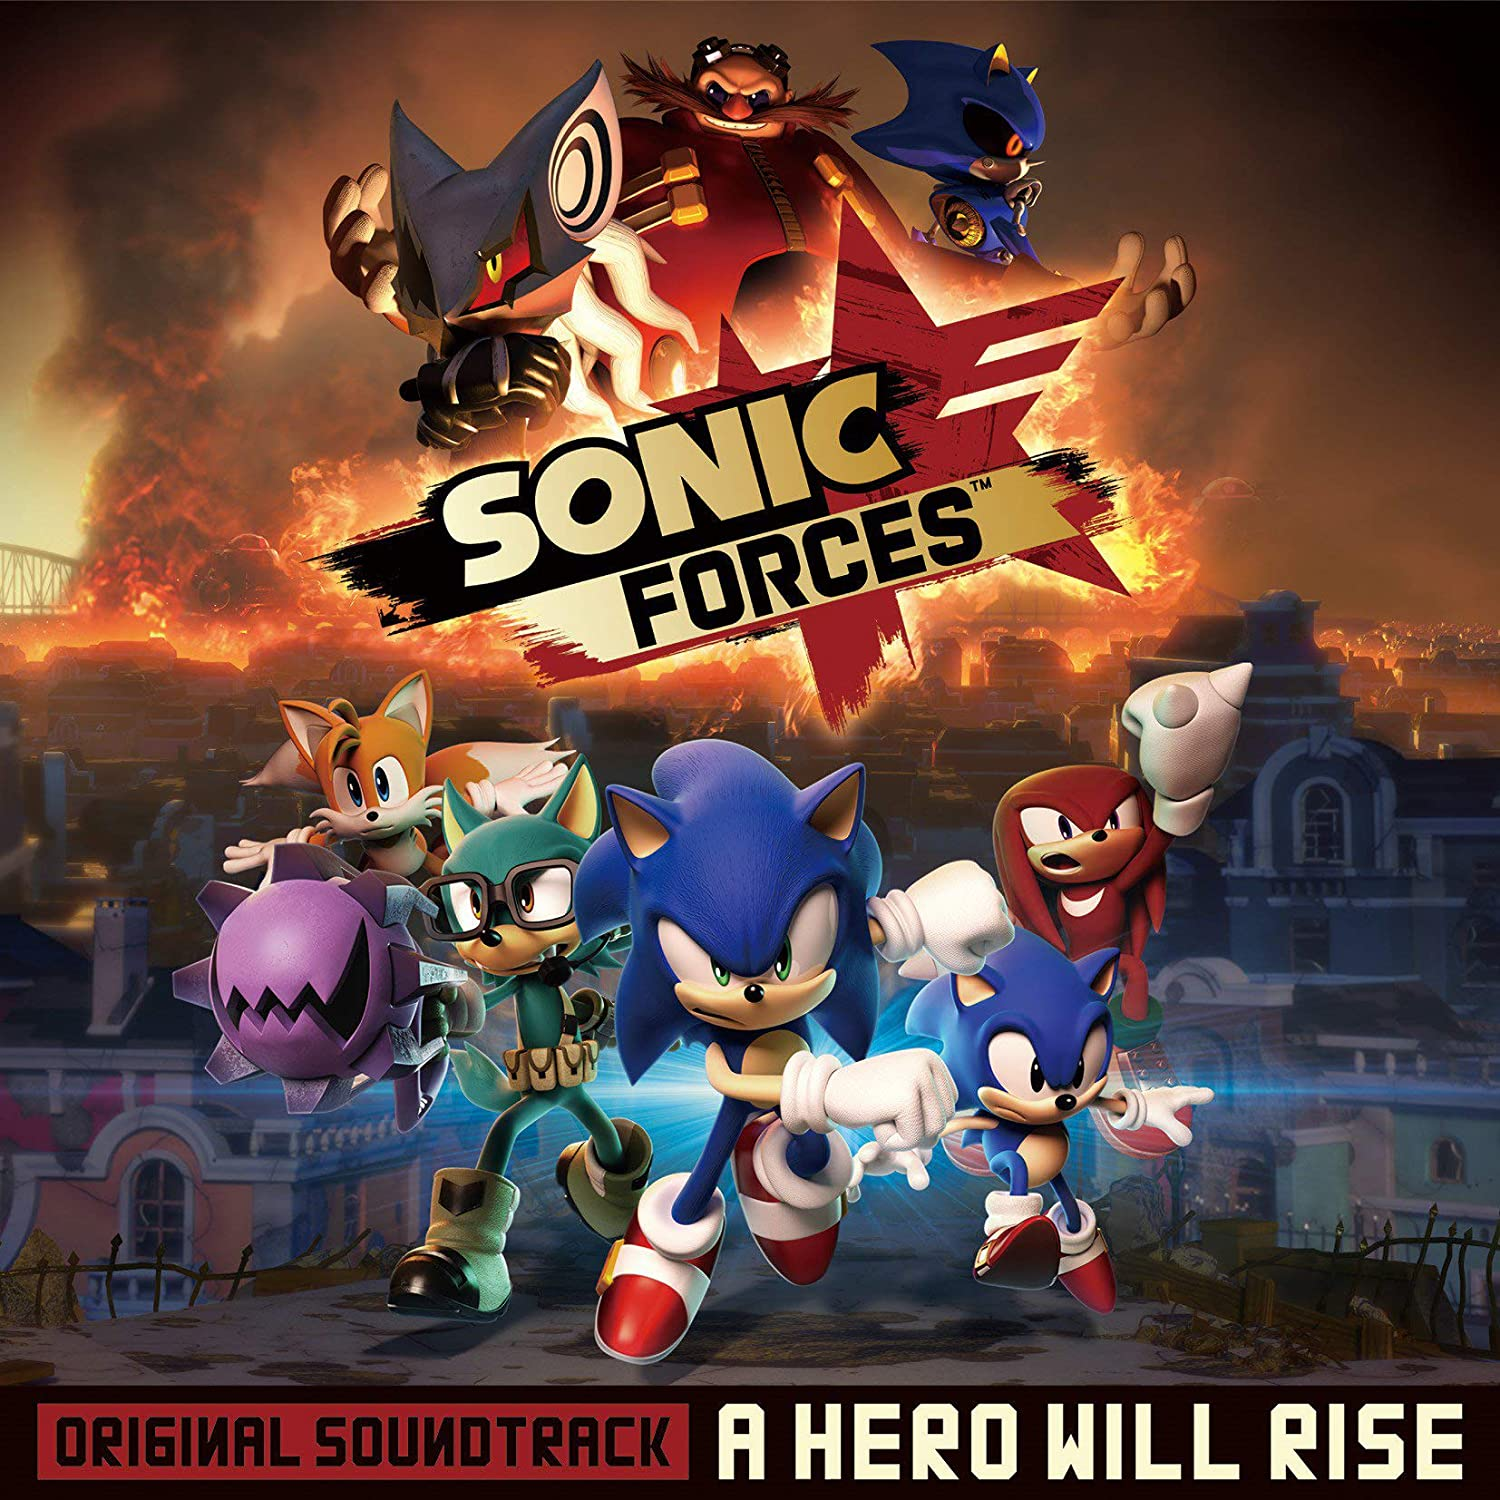 Sonic Forces : A Hero Will Rise OST: Naofumi Hataya/Tomoya Ohtani, Naofumi Hataya/Tomoya Ohtani: Amazon.es: Música